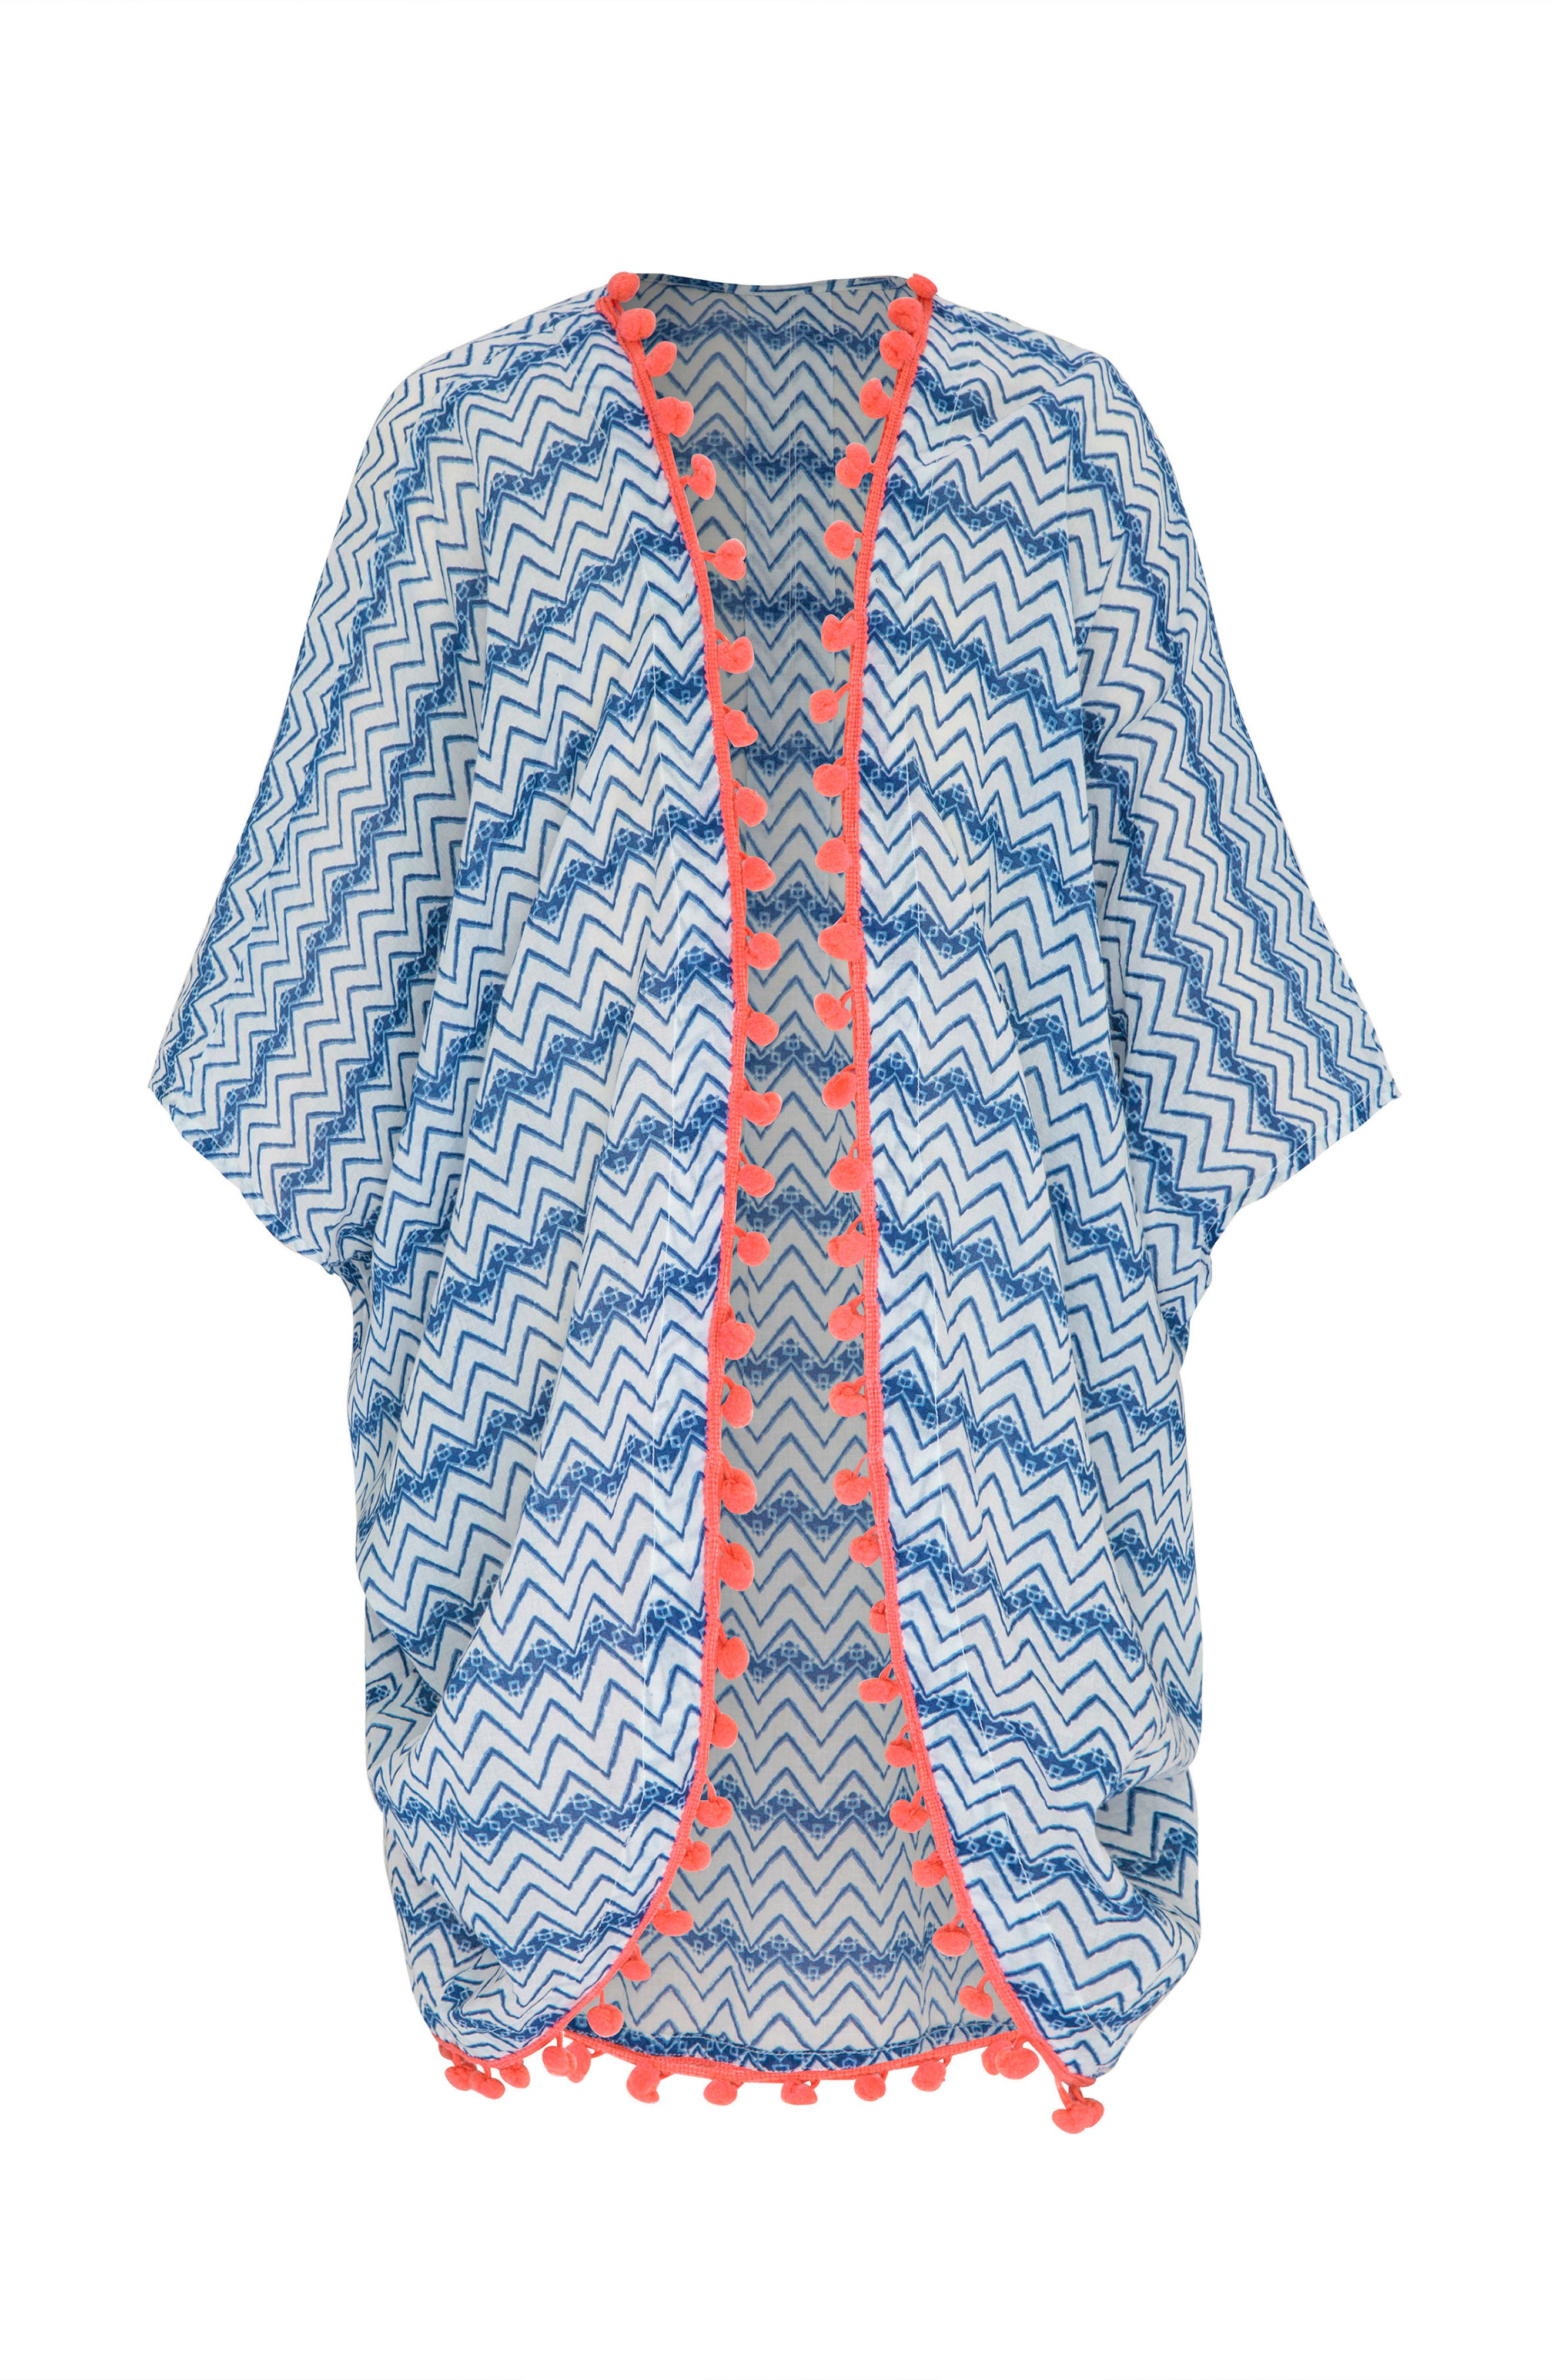 Alternate Image 1 Selected - Platypus Australia Print Cover-Up Kimono (Big Girls)